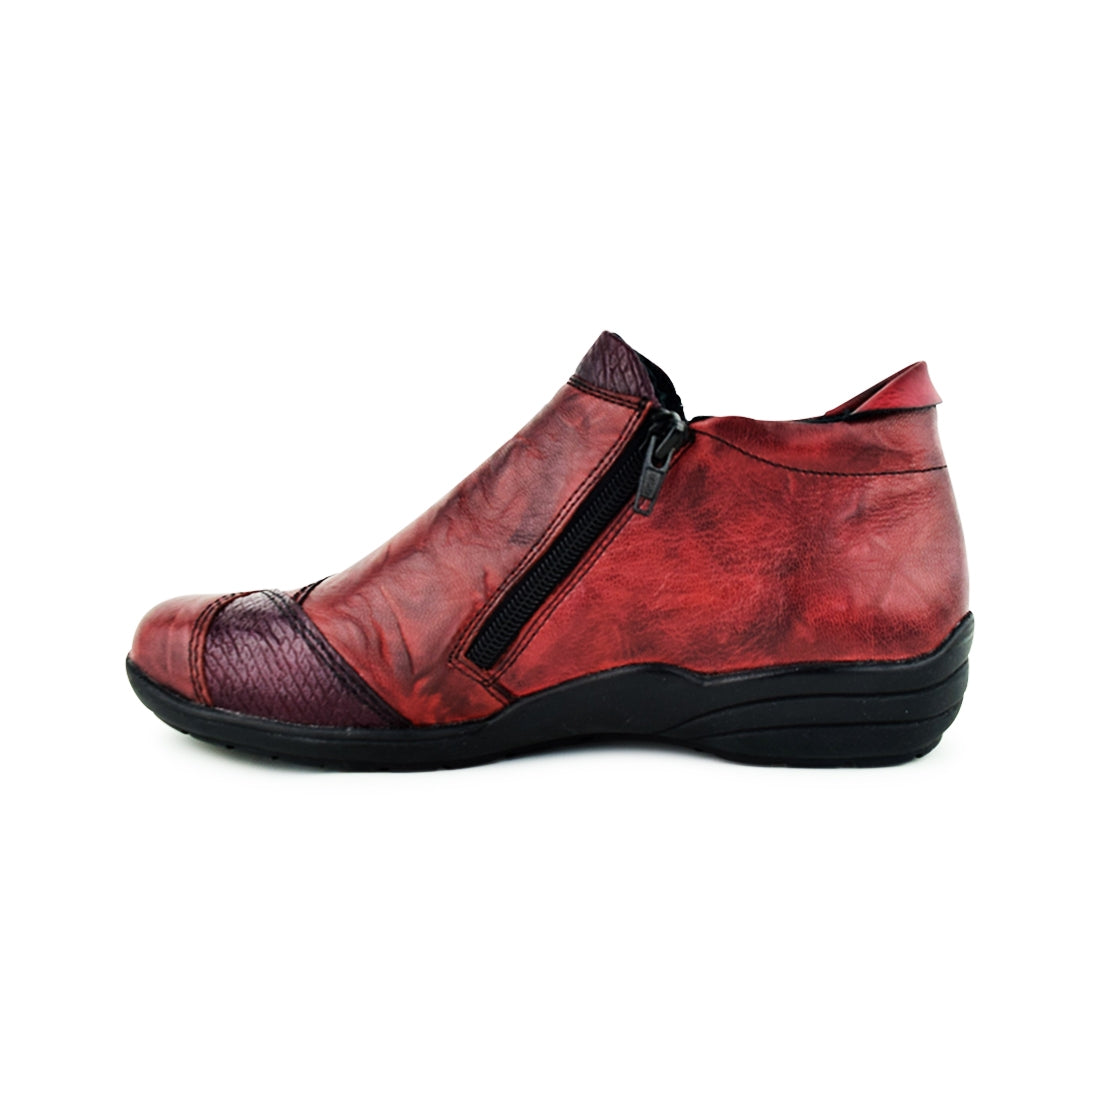 ELMA - Remonte Ankle Boots Red